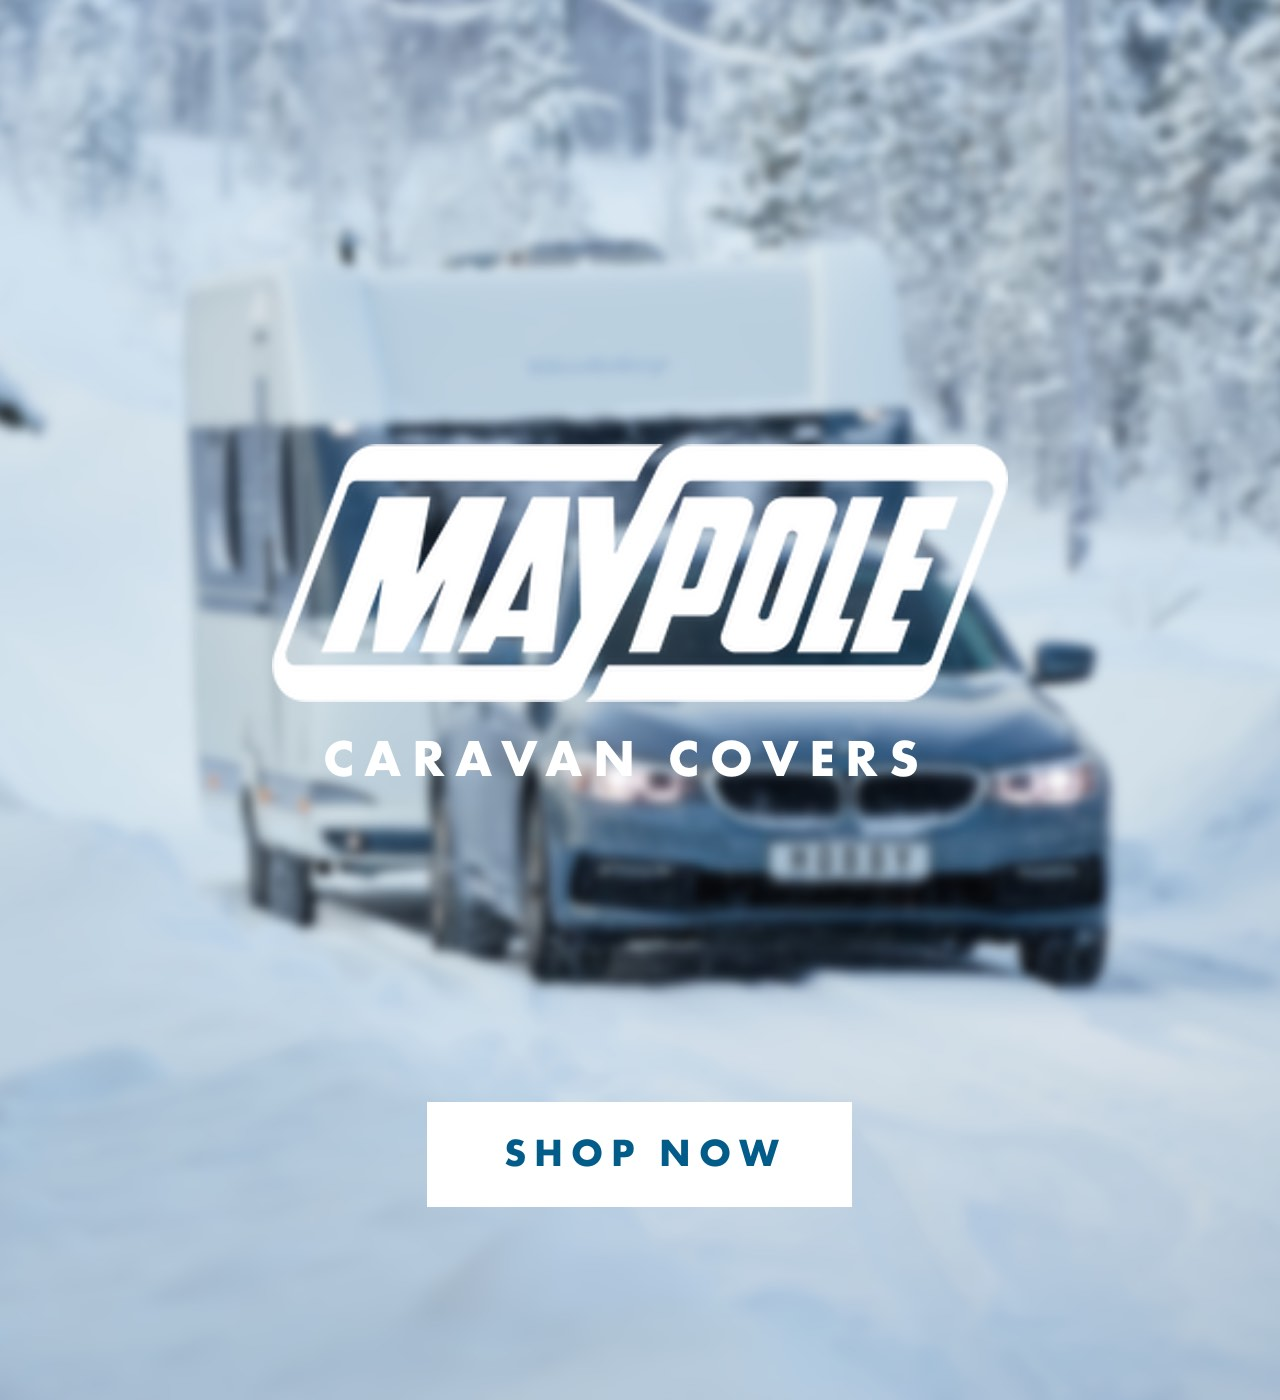 Caravan Covers - Shop Now